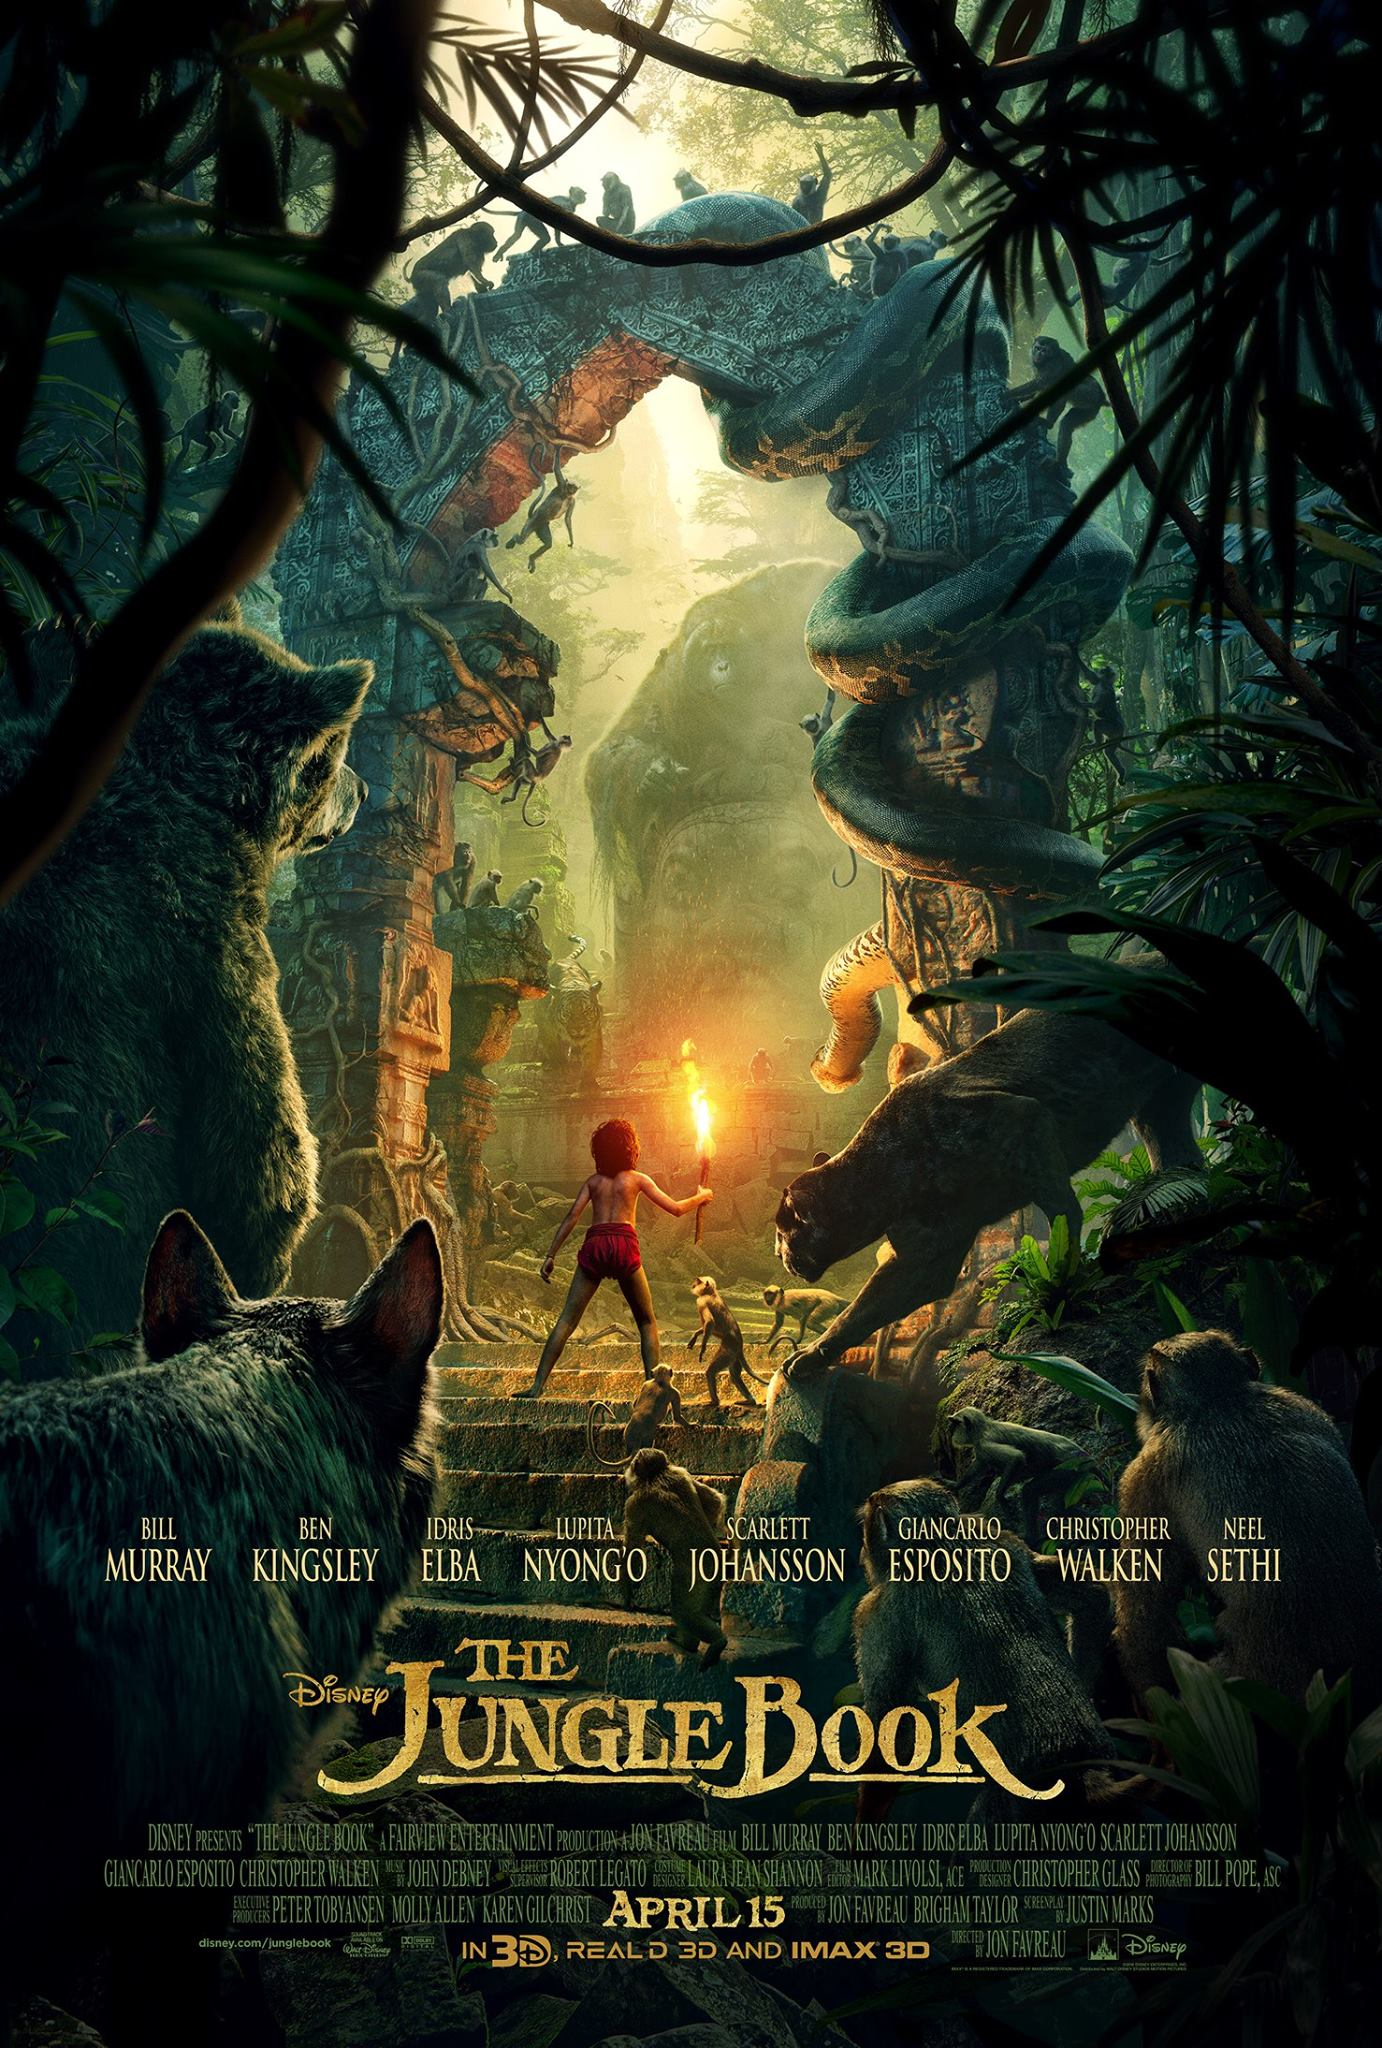 The Jungle Book 2016 Trailer 3gp